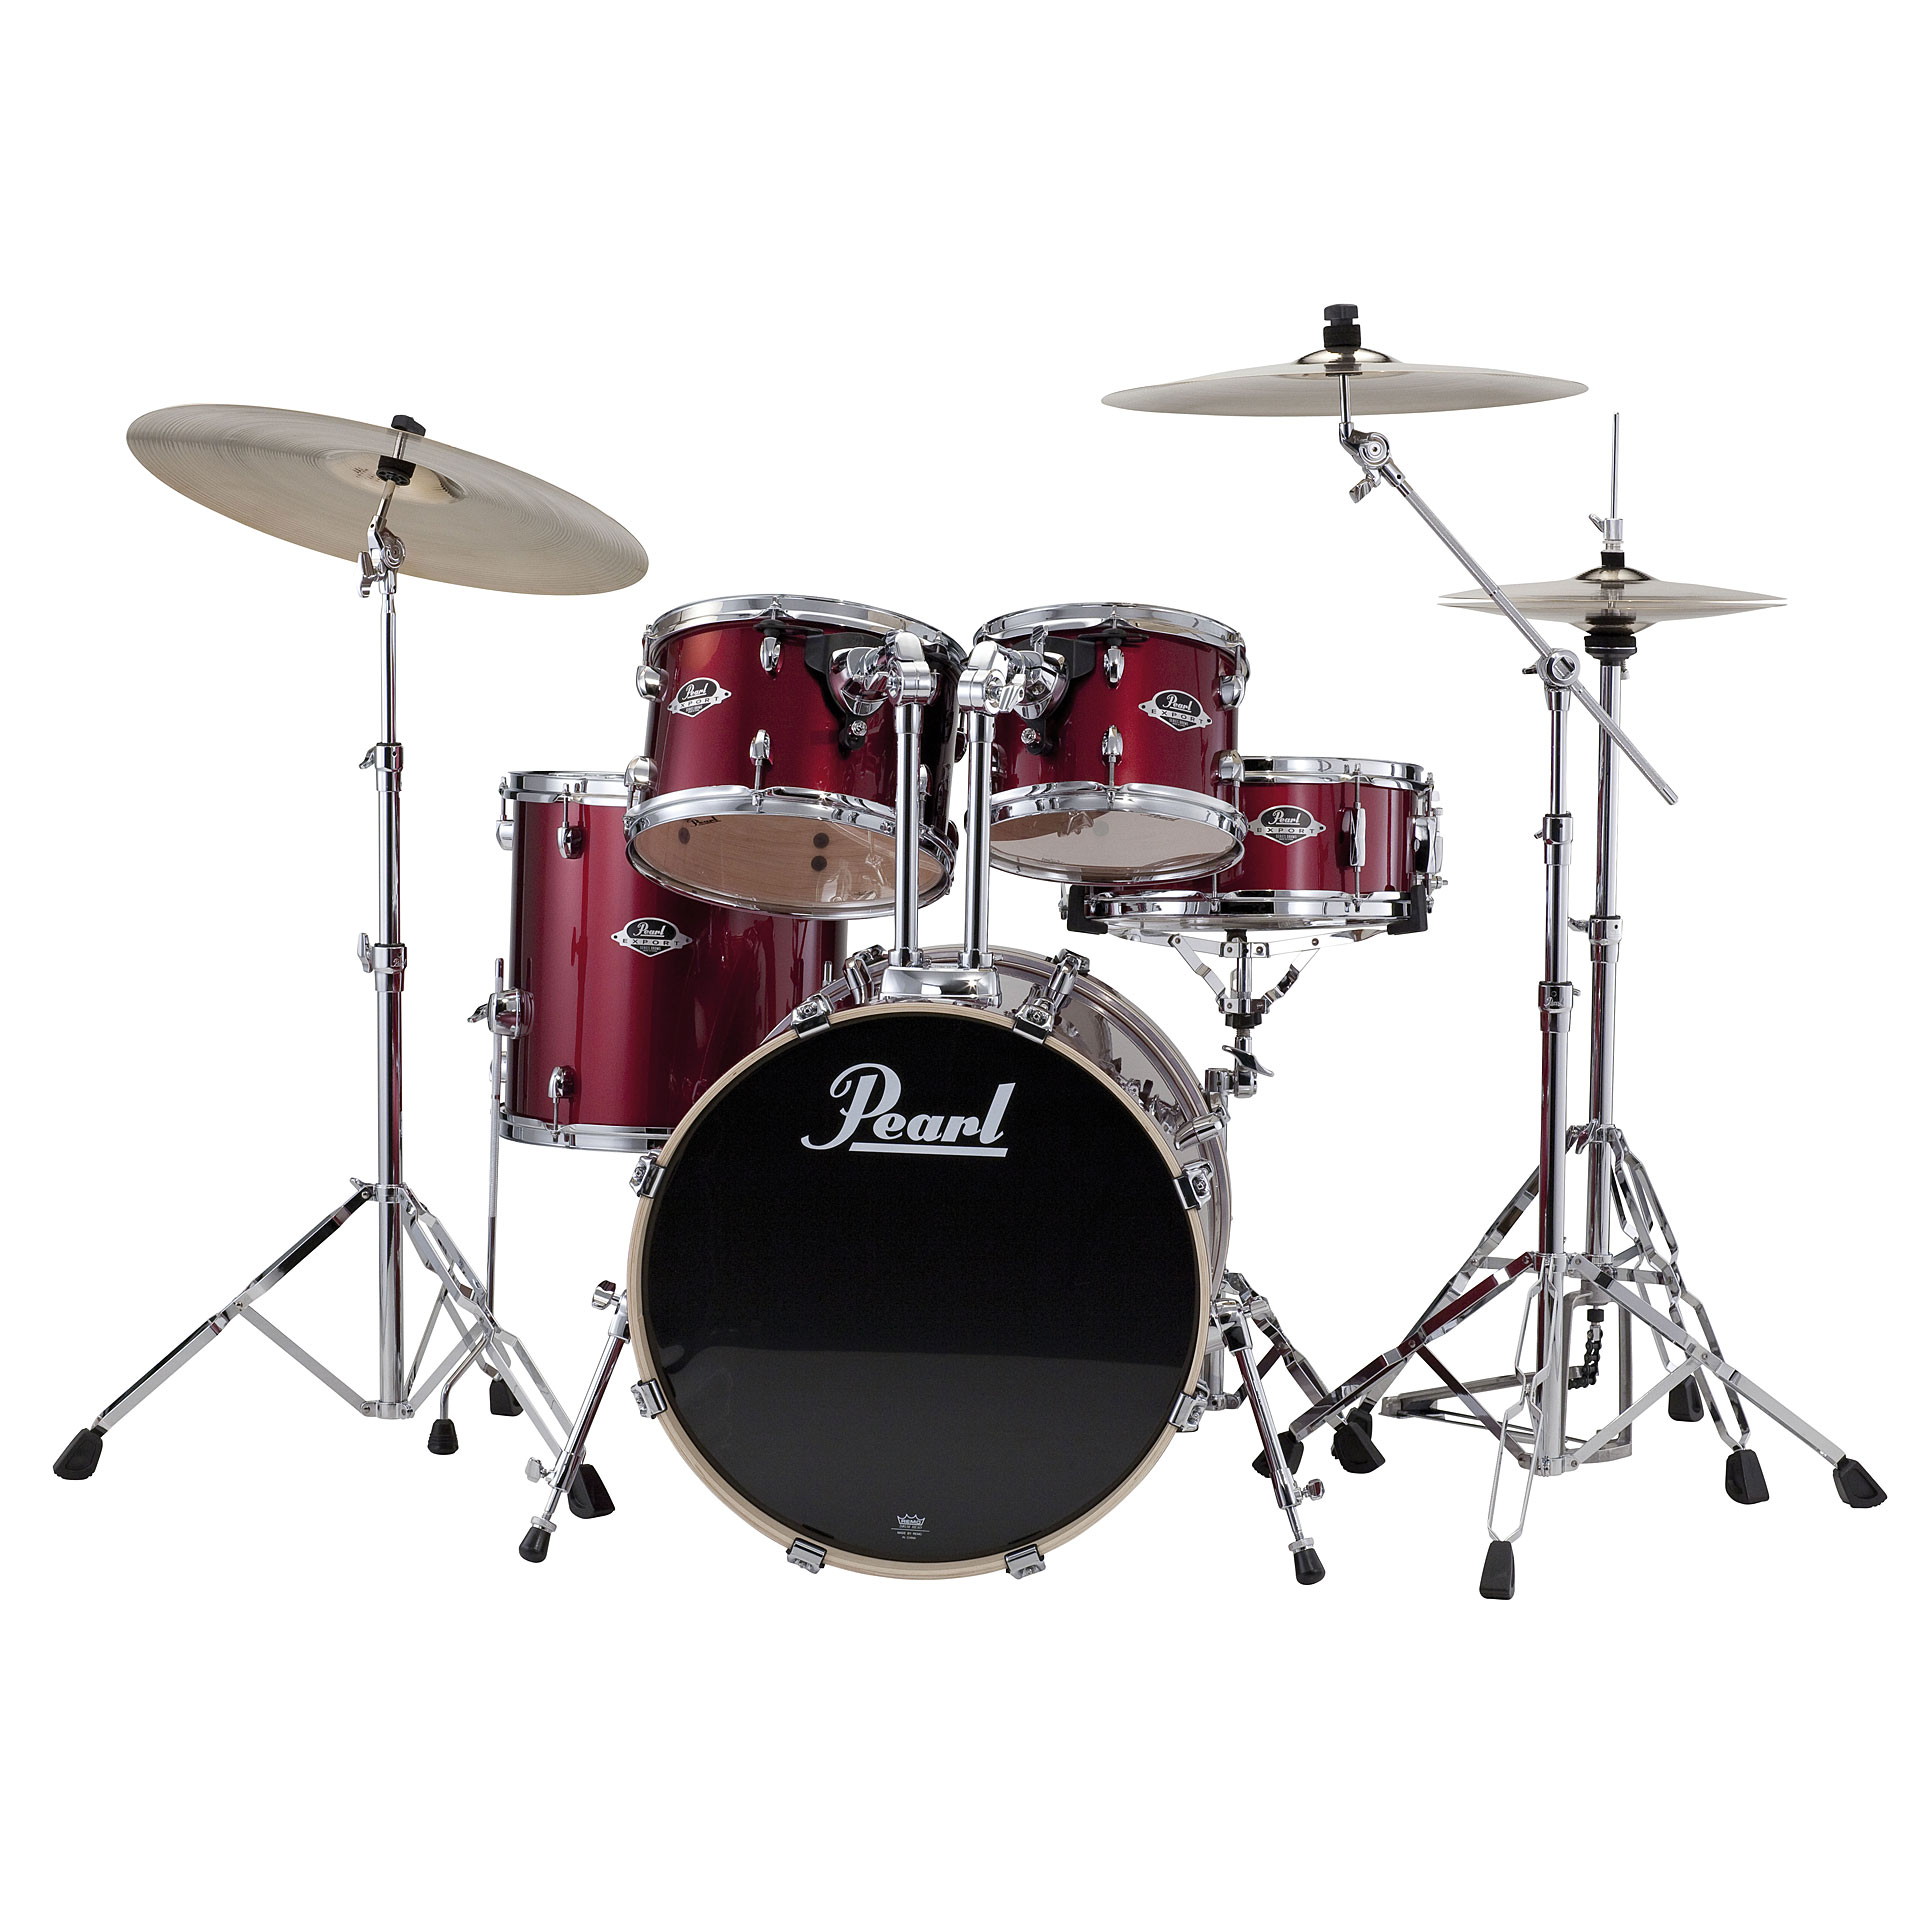 Startseite > Drums & Percussion > Schlagzeug Sets > Pearl > Export ...